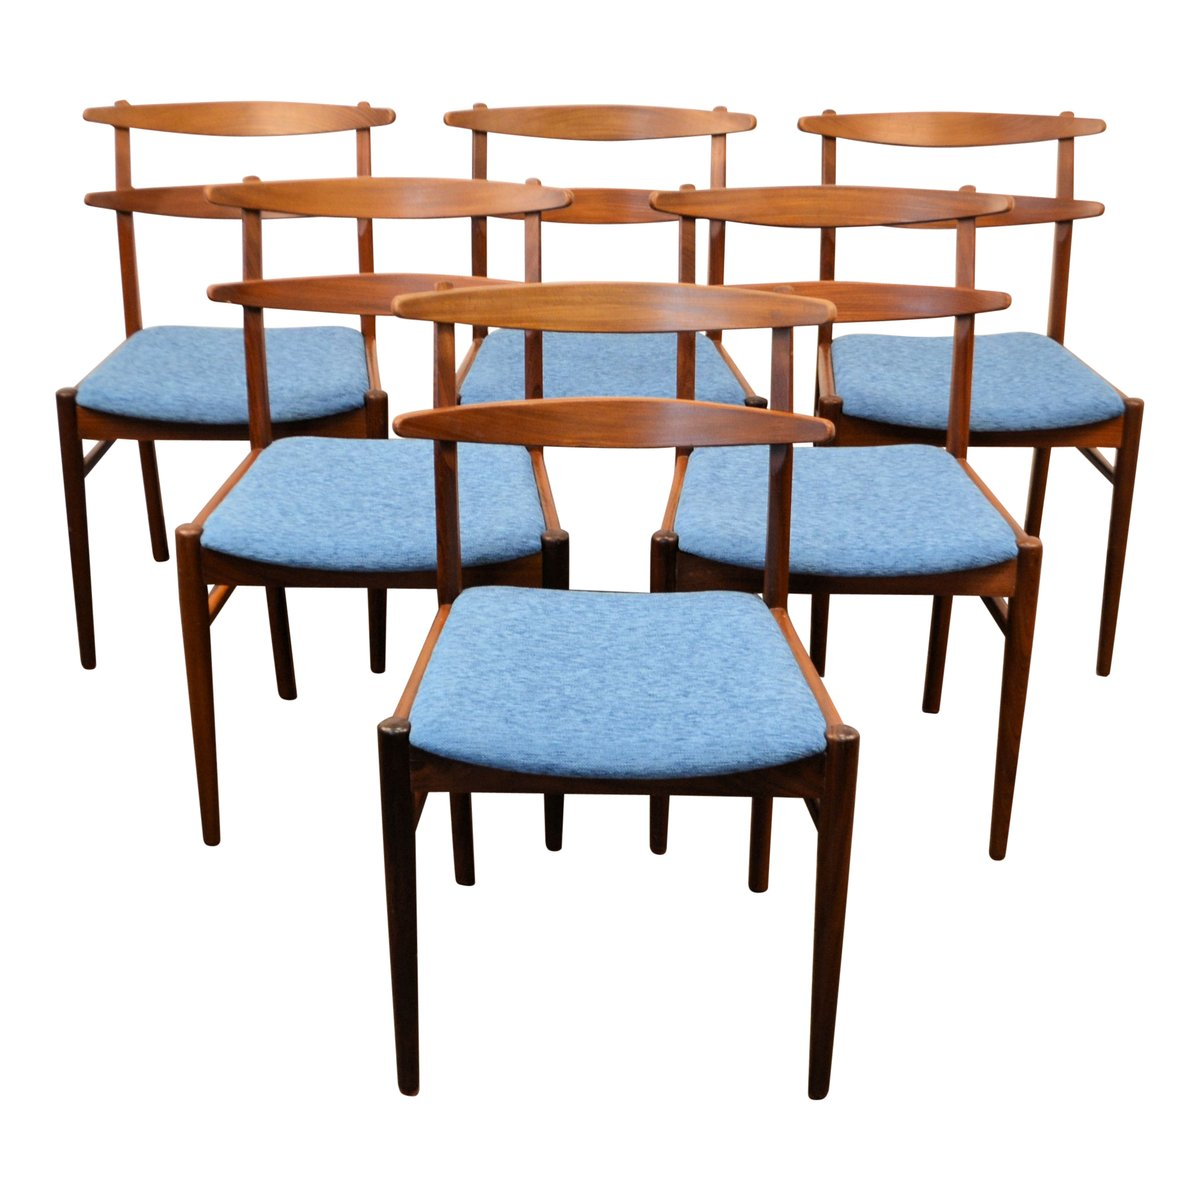 Danish Teak Dining Chairs Danish Teak Dining Chairs 1960s Set Of 6 For Sale At Pamono